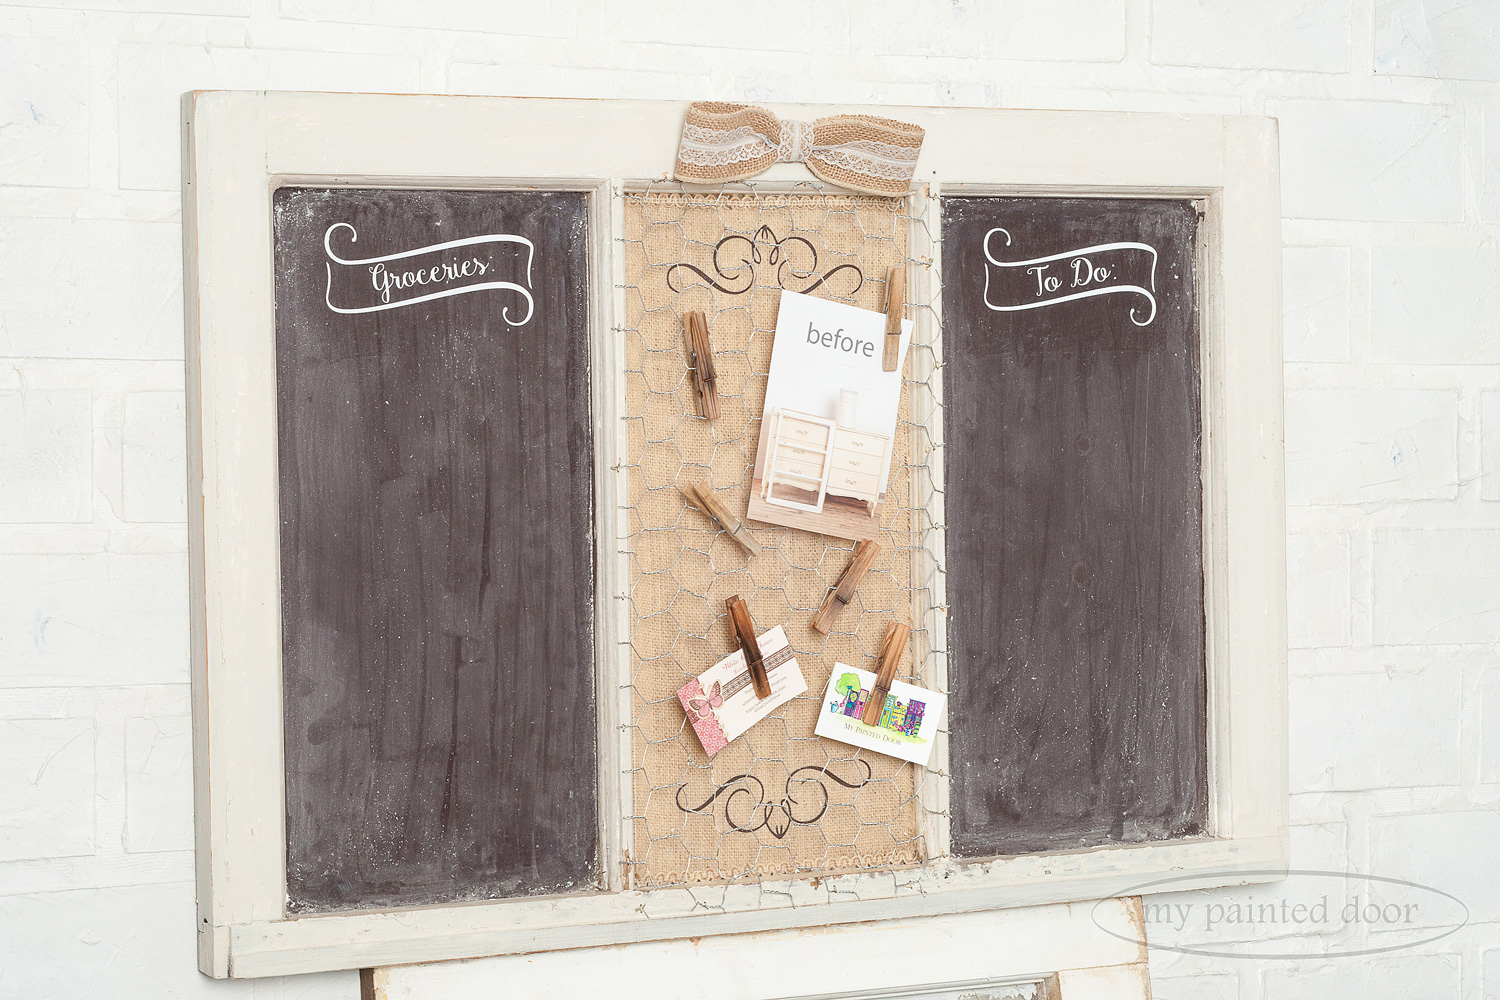 Habitat for Humanity Upcycle Challenge - old window made into a chalkboard and painted with Miss Mustard Seed's milk paint.